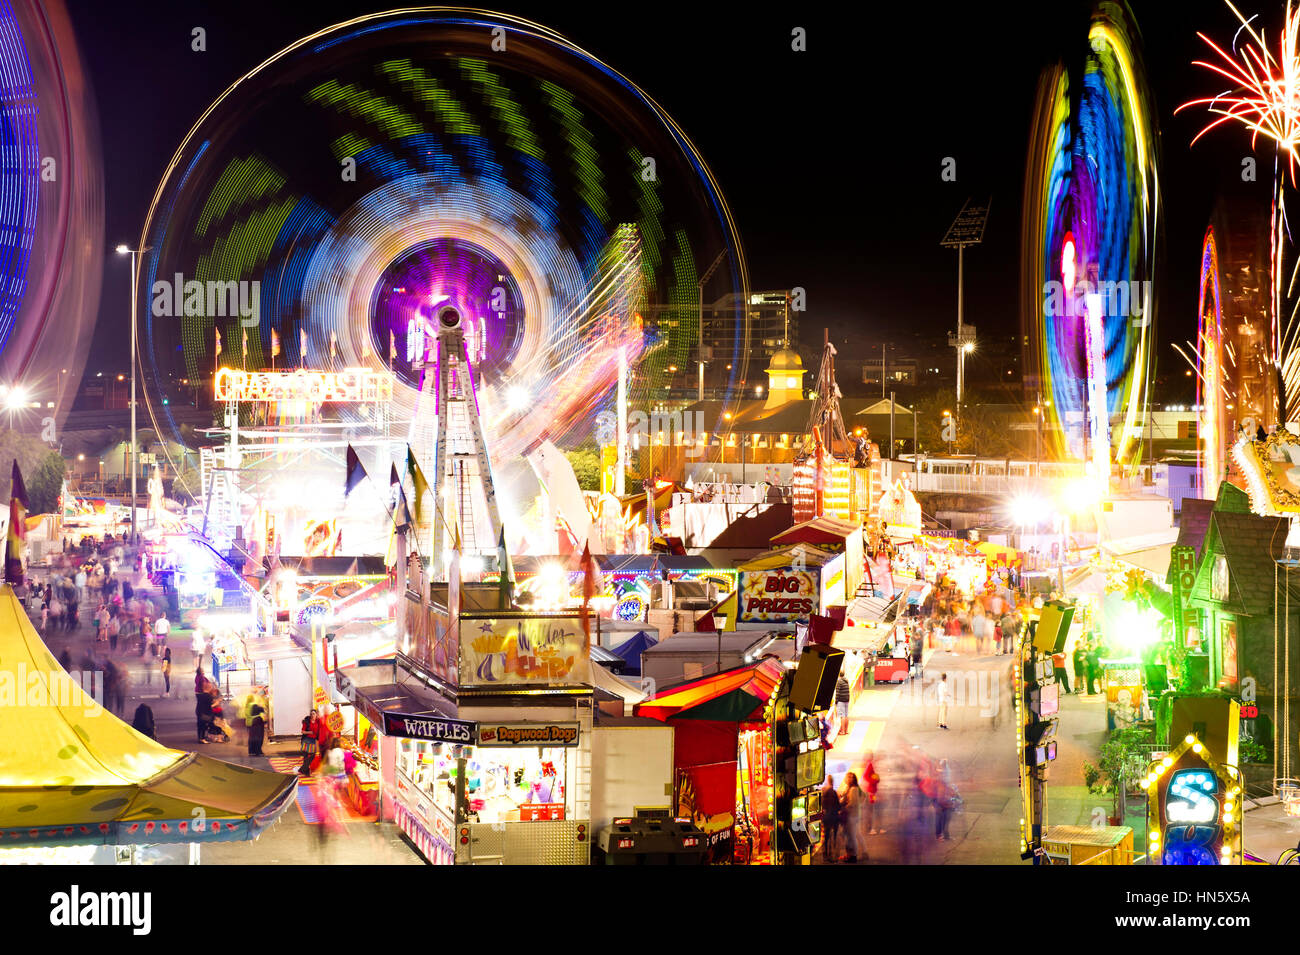 Fairground carnival rides at night time - Stock Image